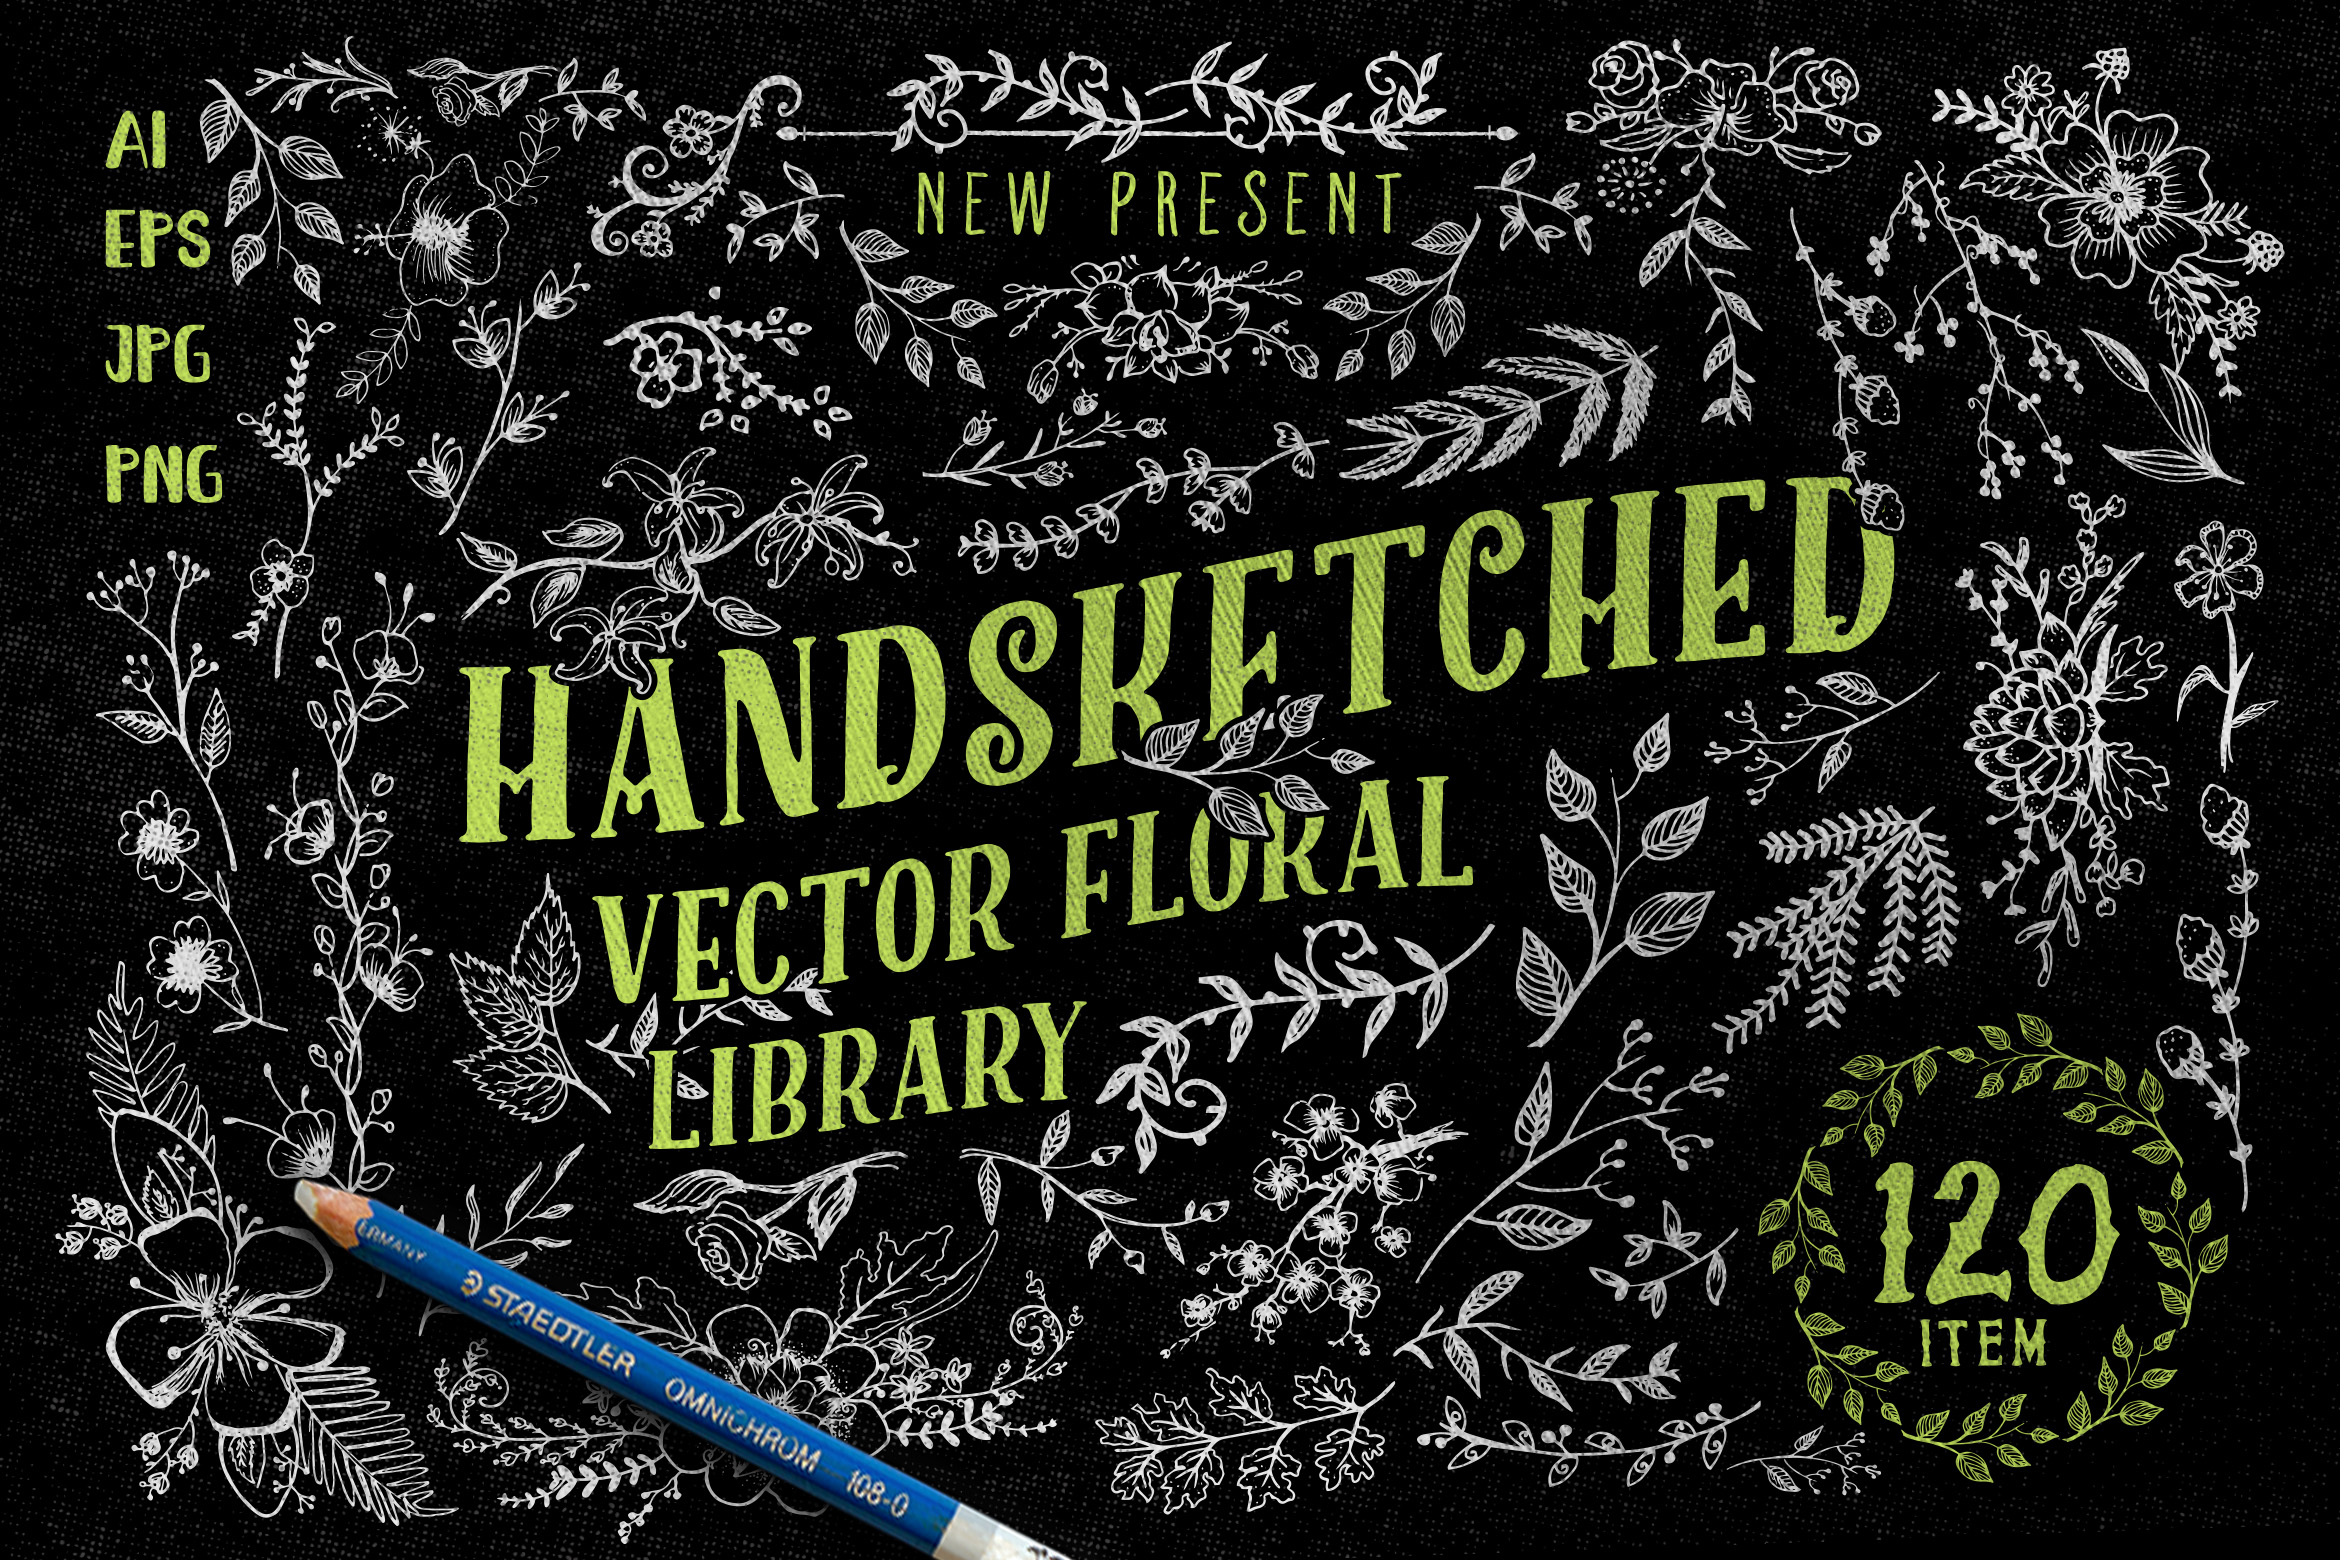 Handsketched Vector Floral Library Graphic Illustrations By storictype